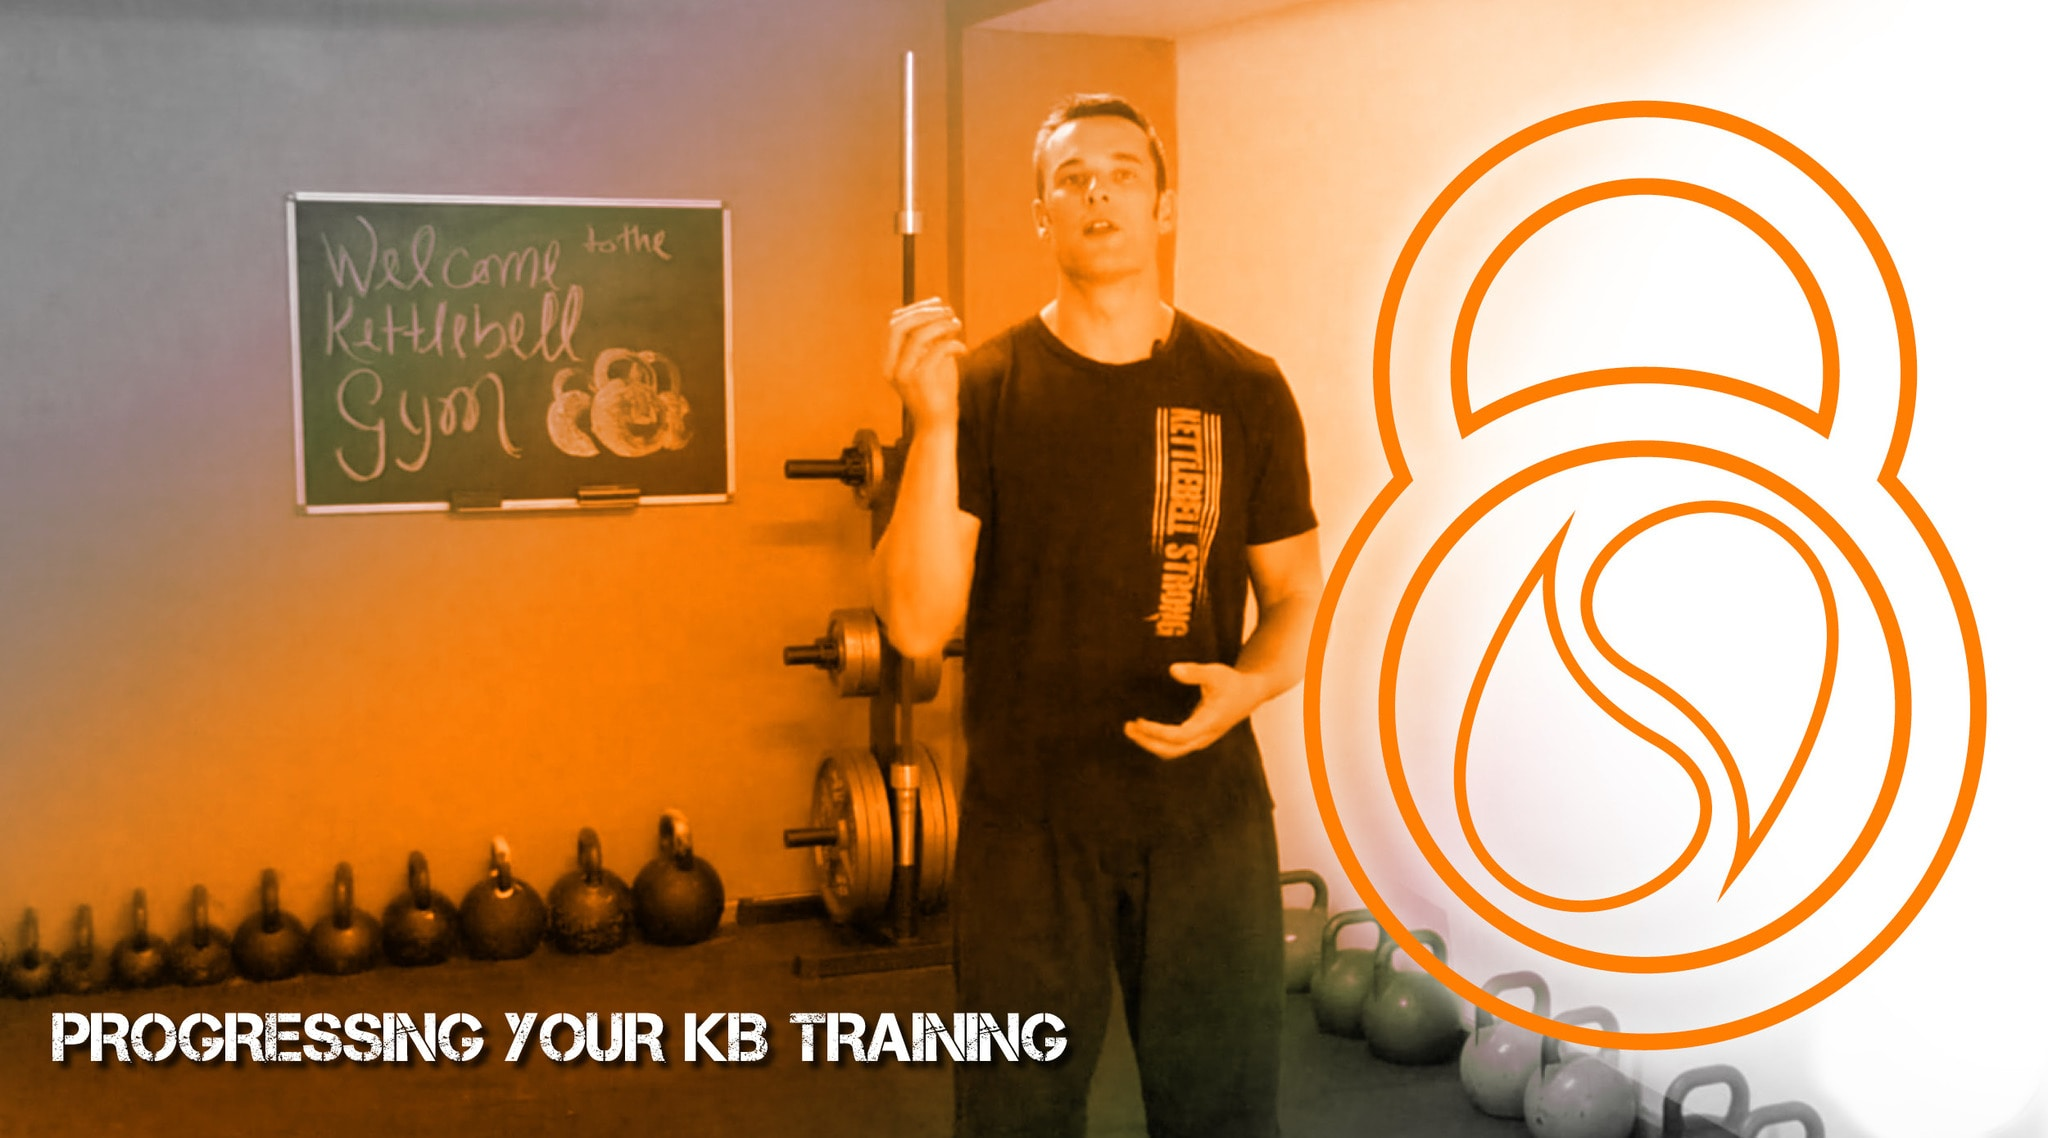 PROGRESSING YOUR KB TRAINING